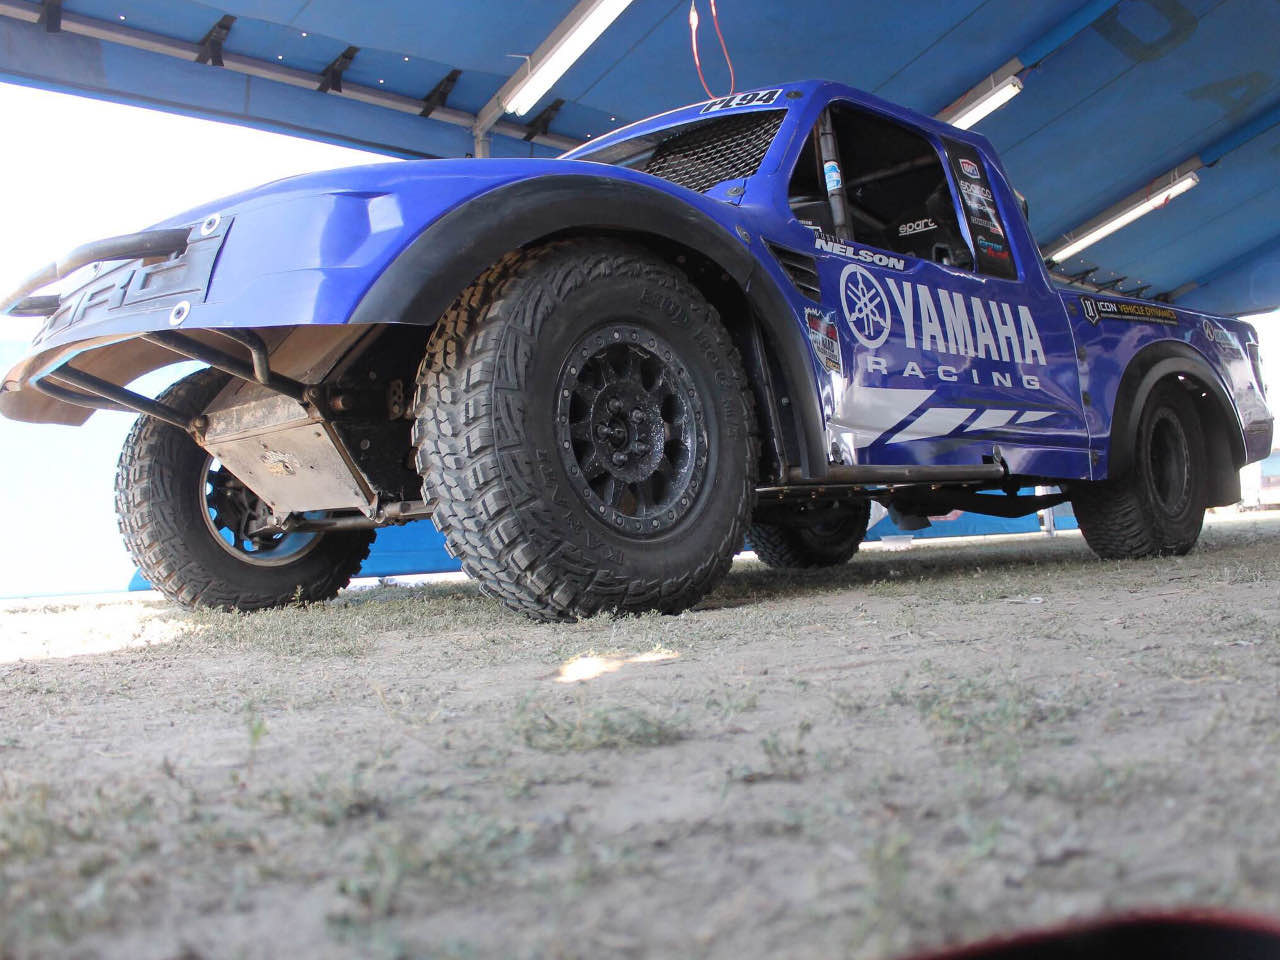 Dustin Nelson Signs With Kanati Tires For 2015 Race Season